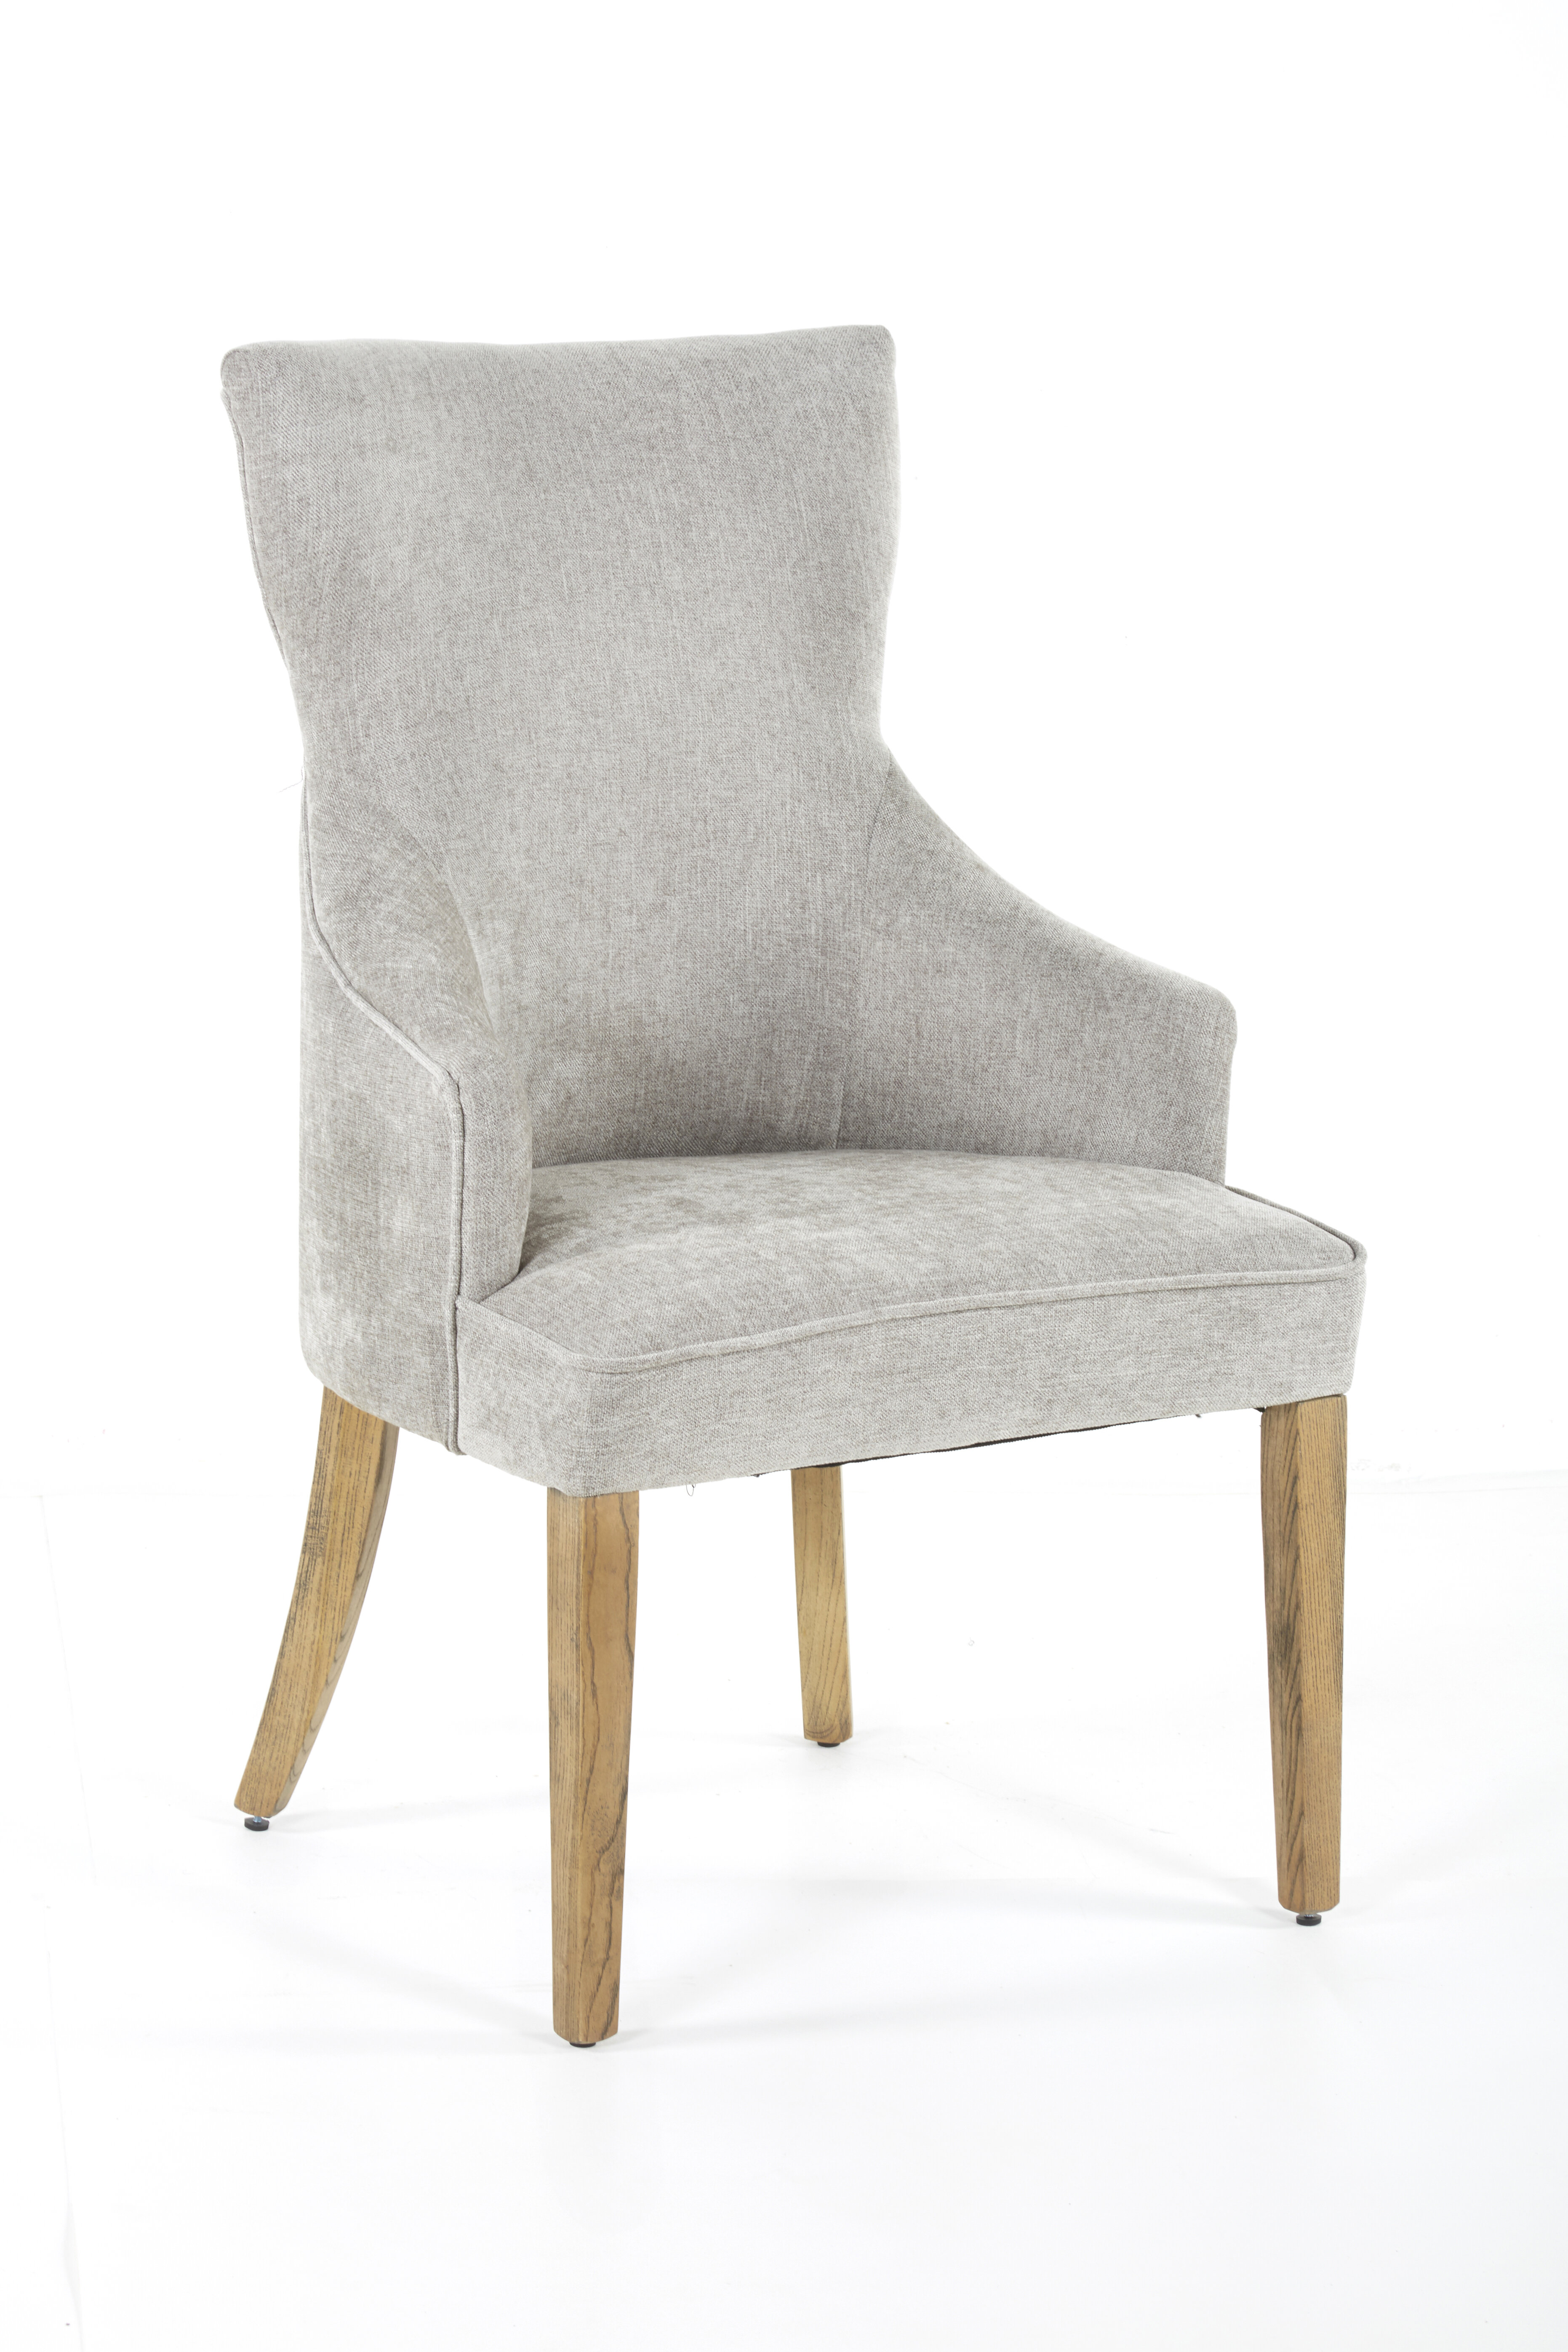 Foundry Select Hampshire Upholstered Side Chair Wayfair